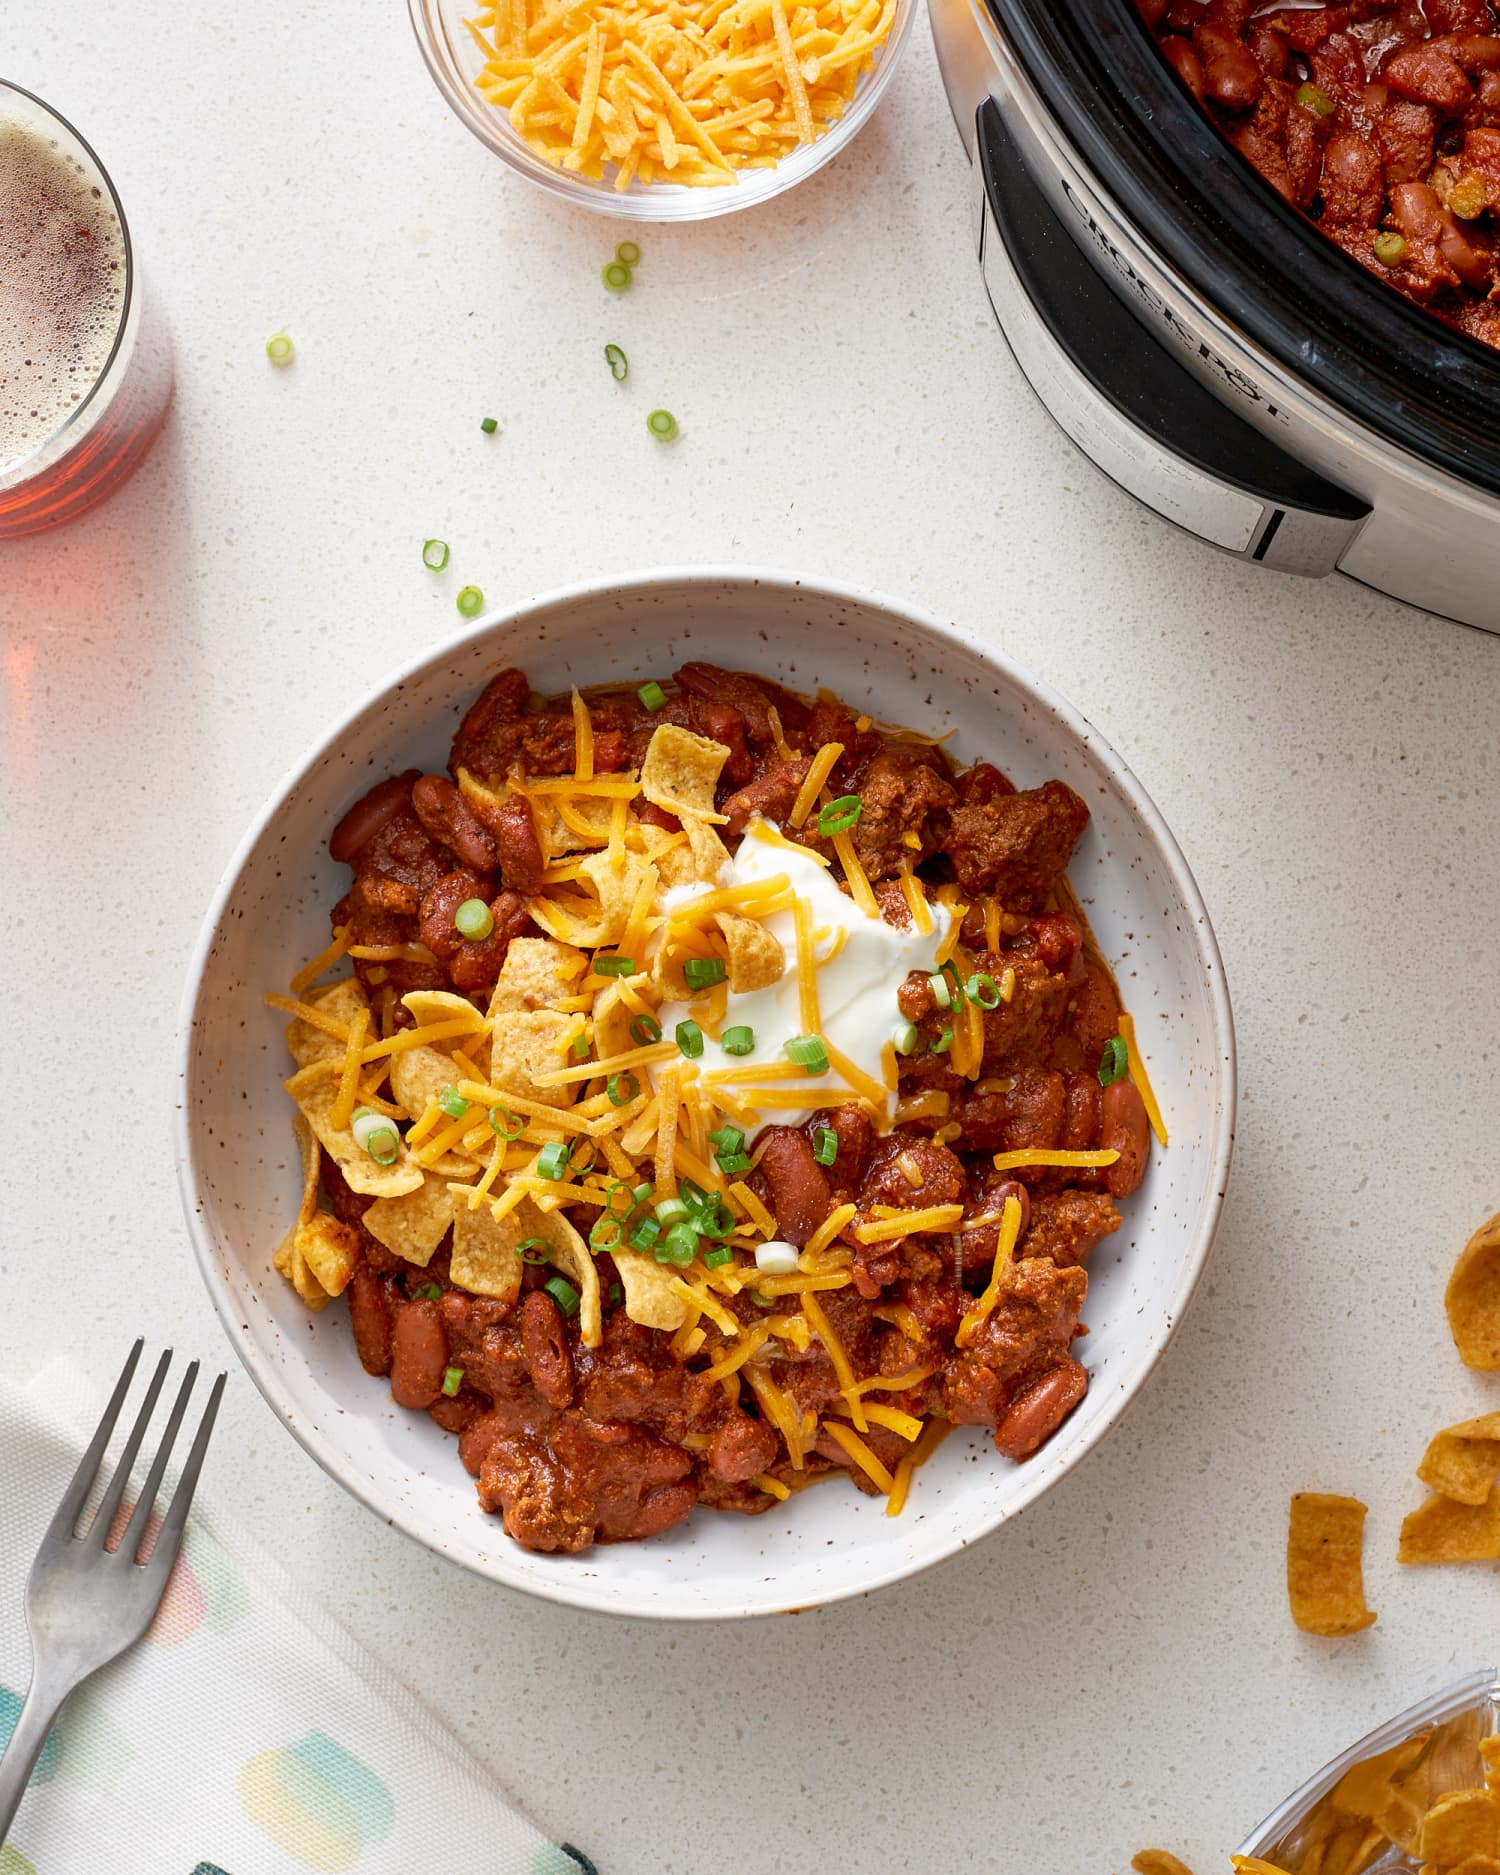 13 Must-Make Slow Cooker Chili Recipes, From Classic to Vegan